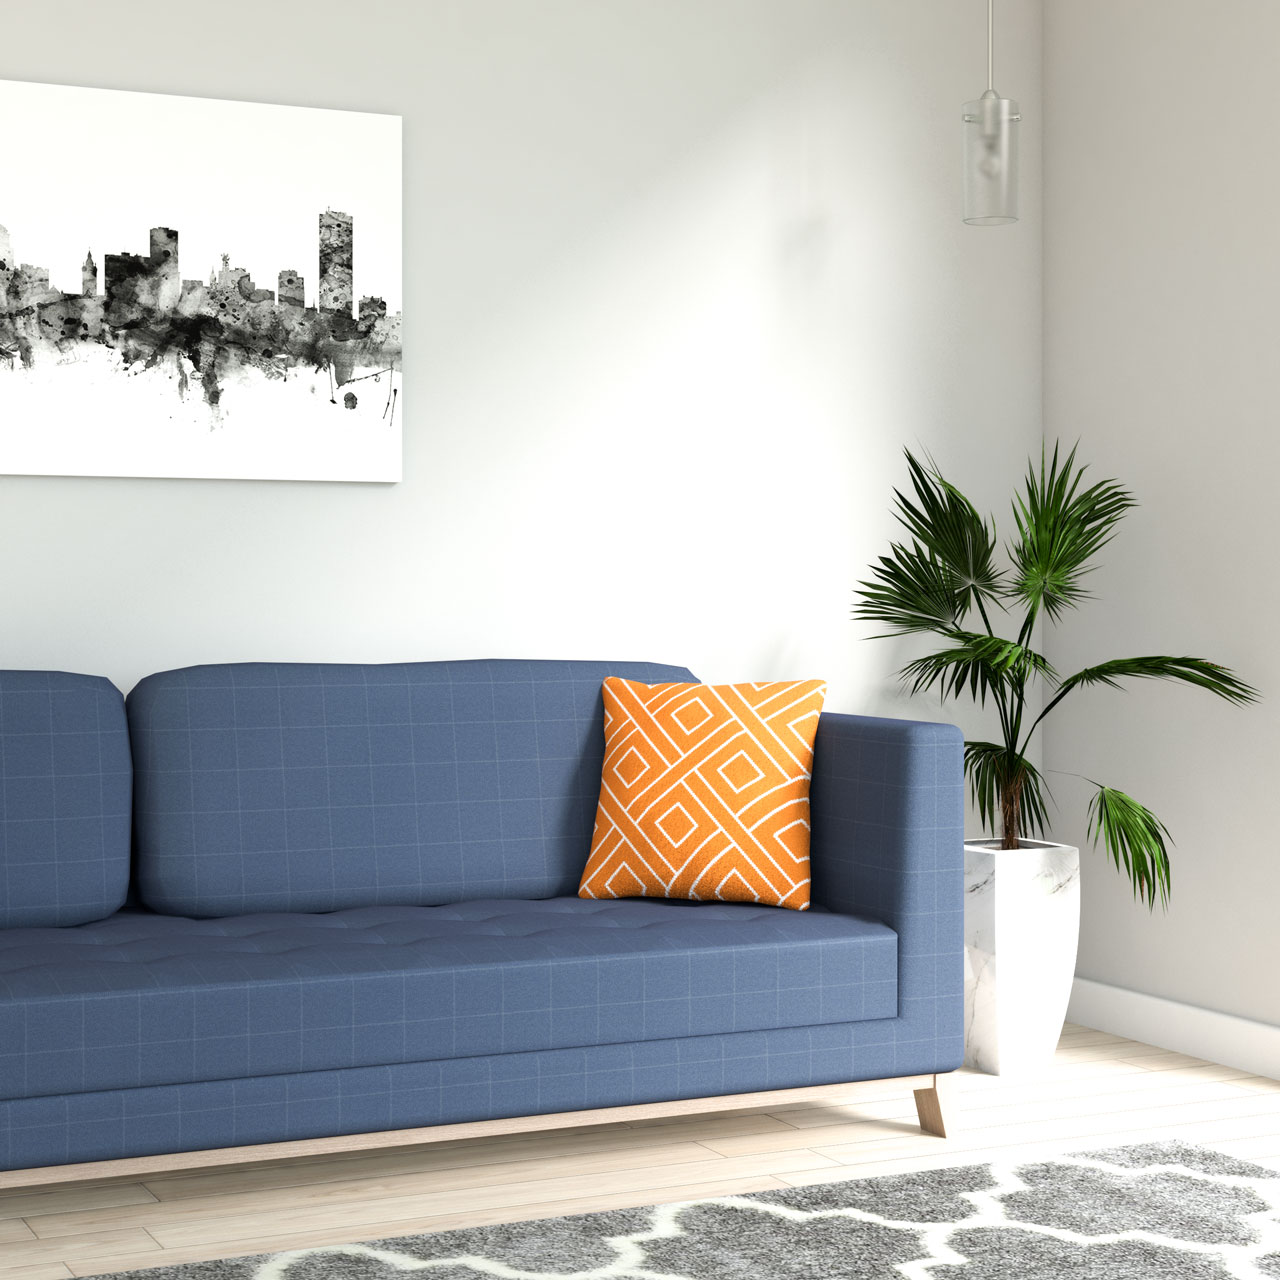 Orange geometric style throw pillow with blue couch